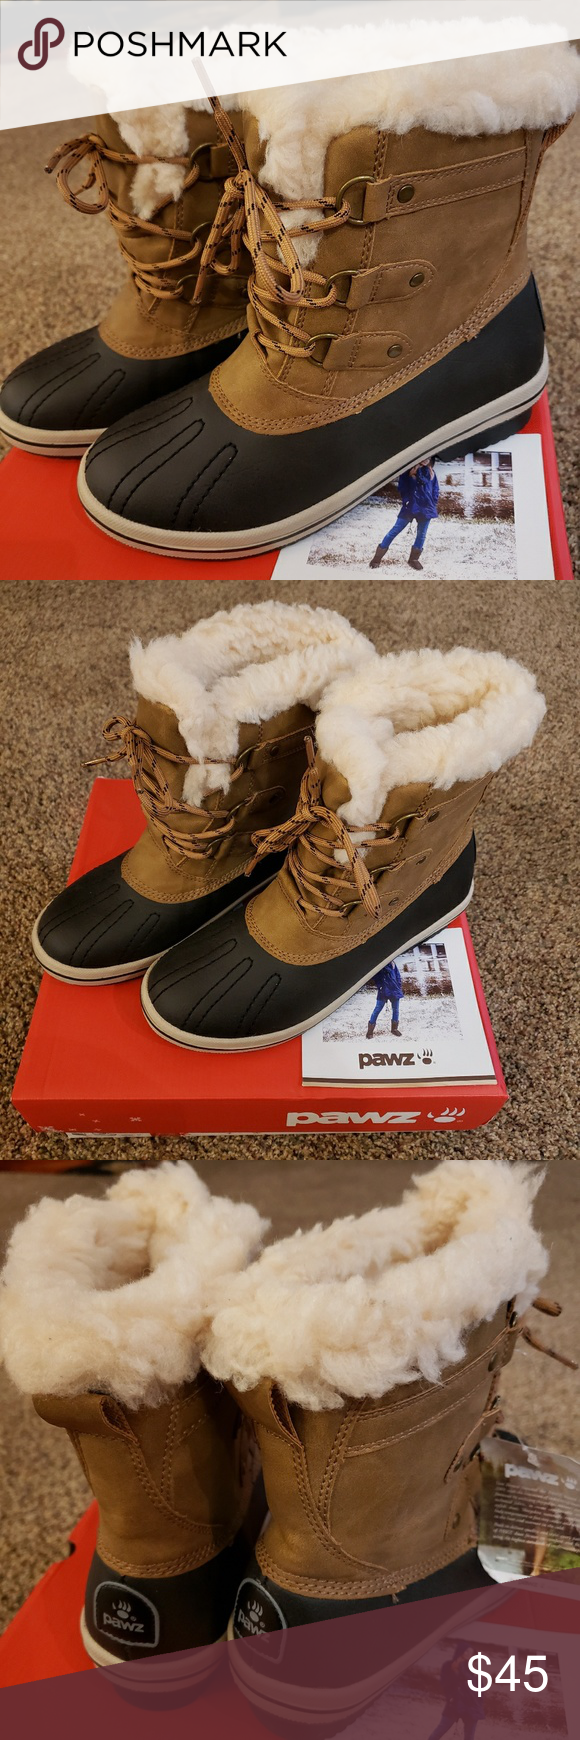 a645f019a12 PAWZ Fur Boots Size 7 Brand New Bearpaw Gina These are Brand New ...